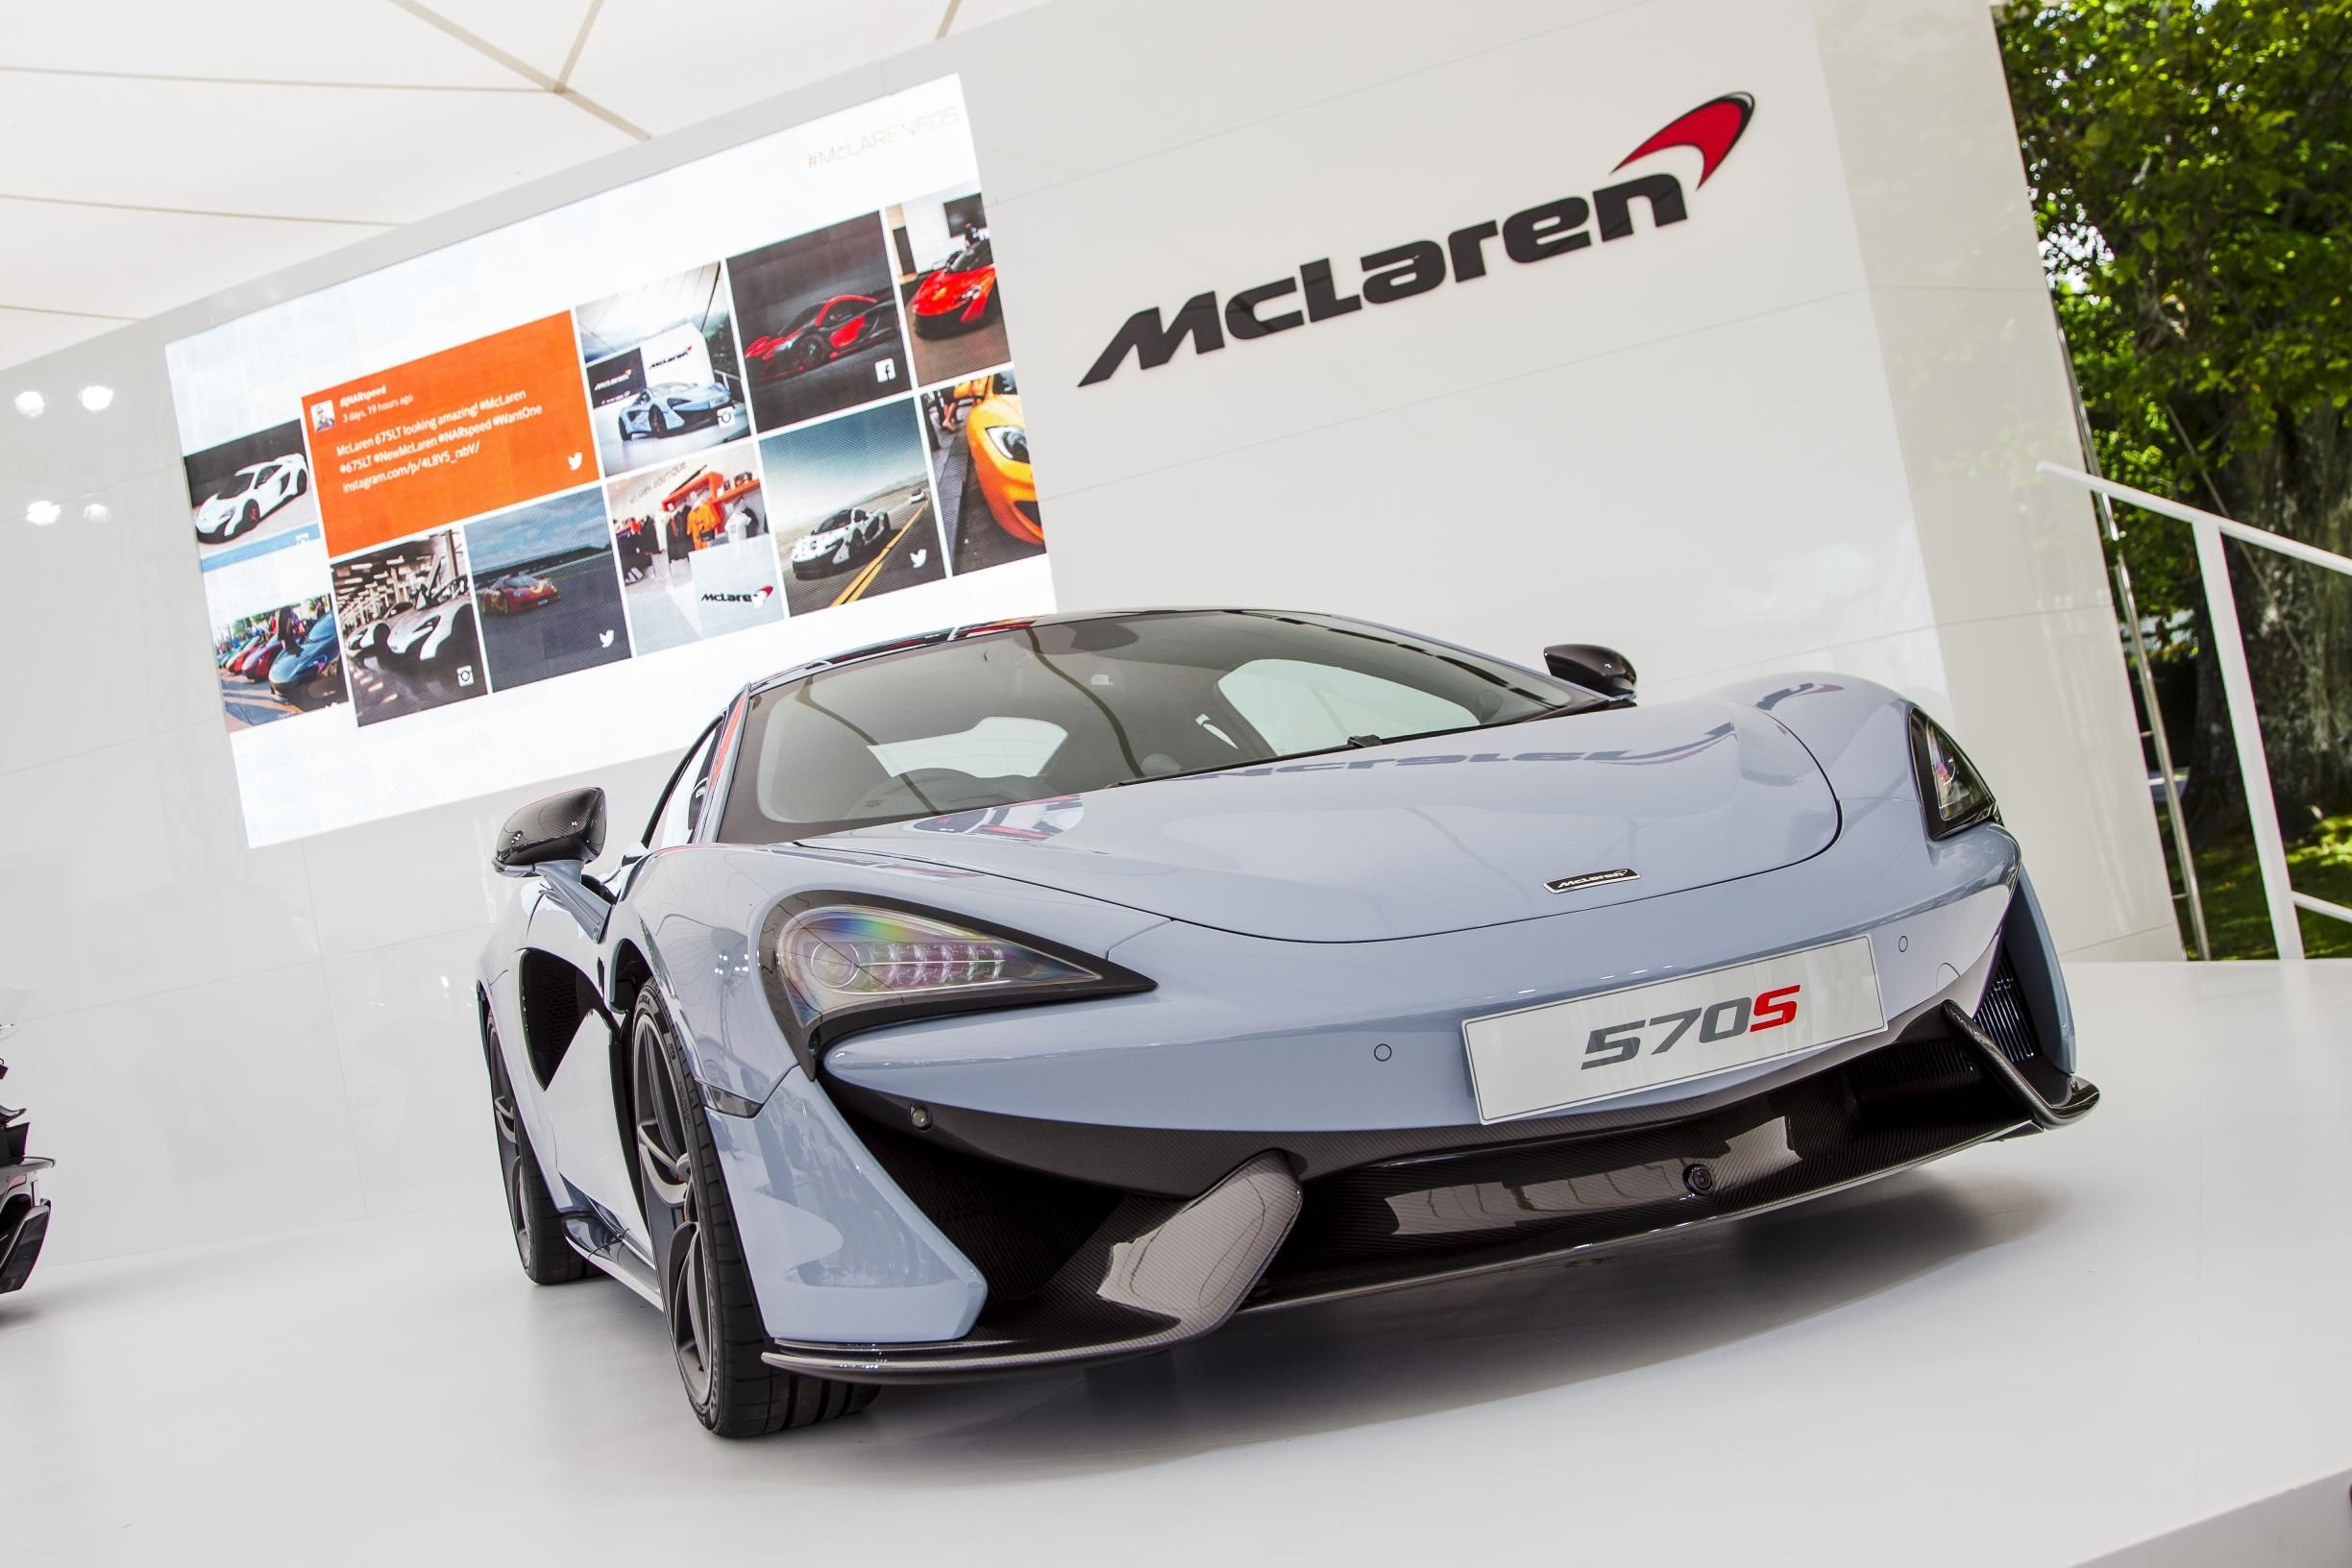 McLaren returns to Chantilly Arts & Elegance with 570S Coupé